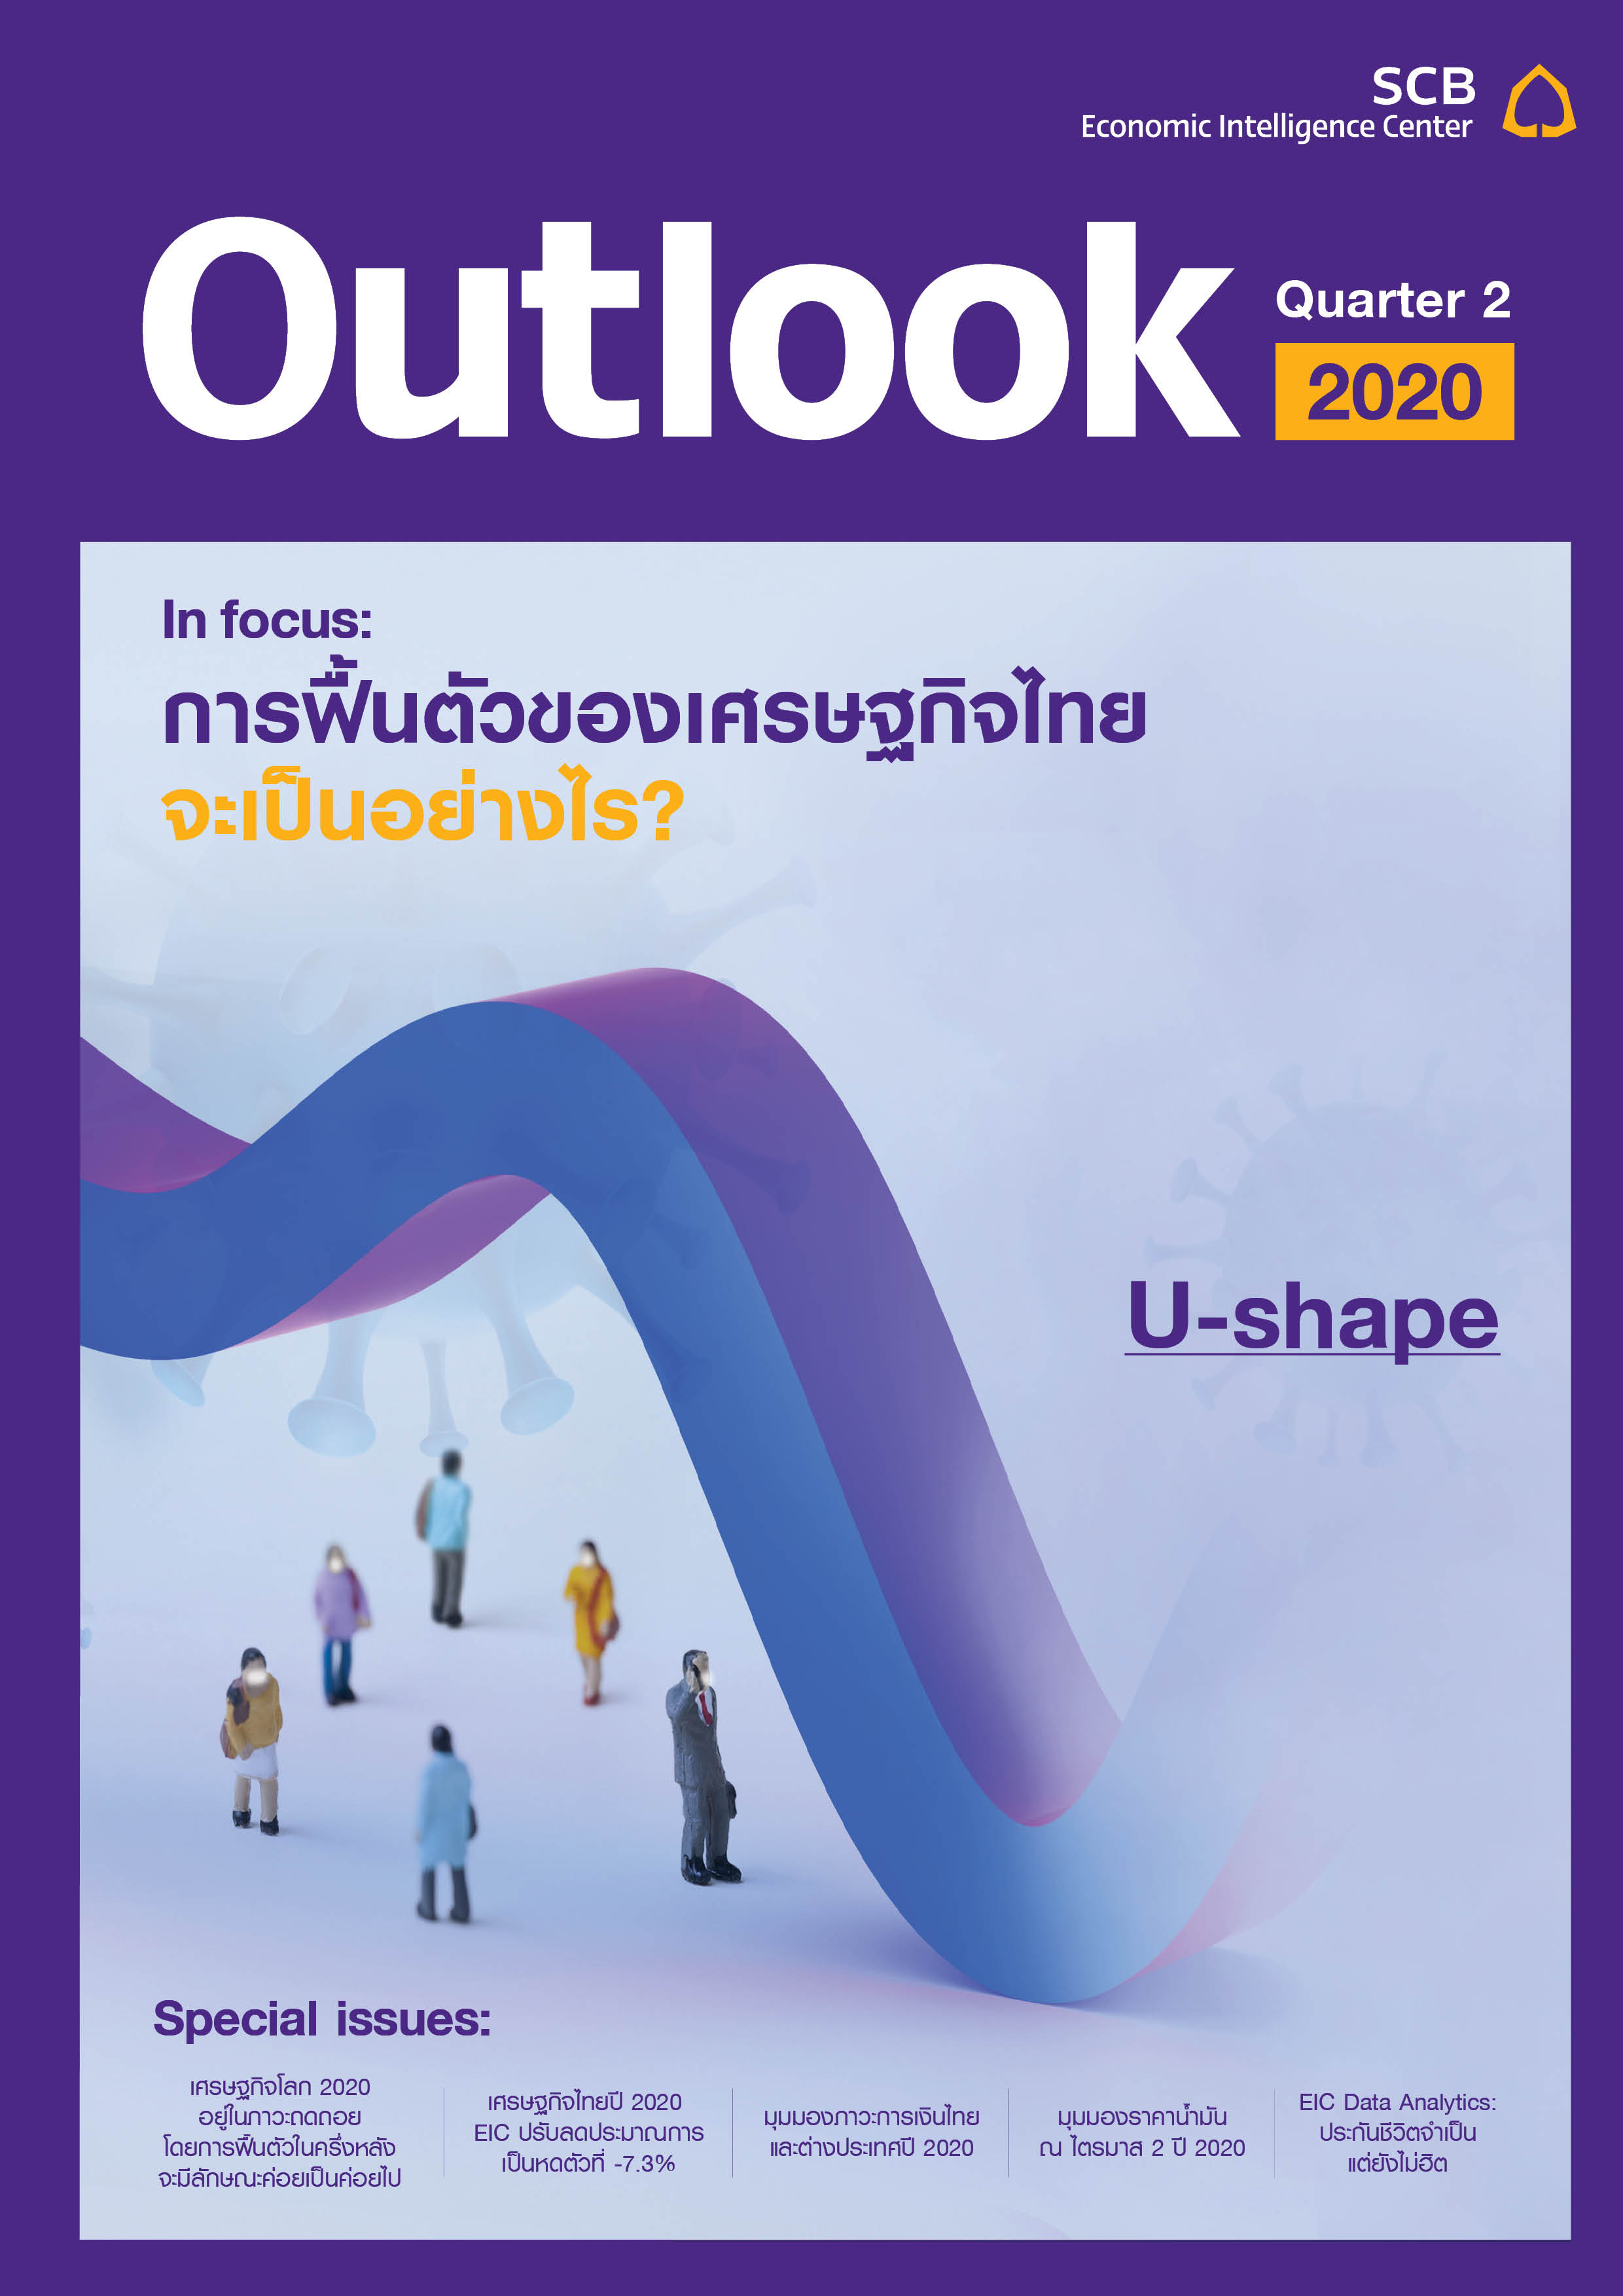 Cover_Outlook2Q2020.jpg